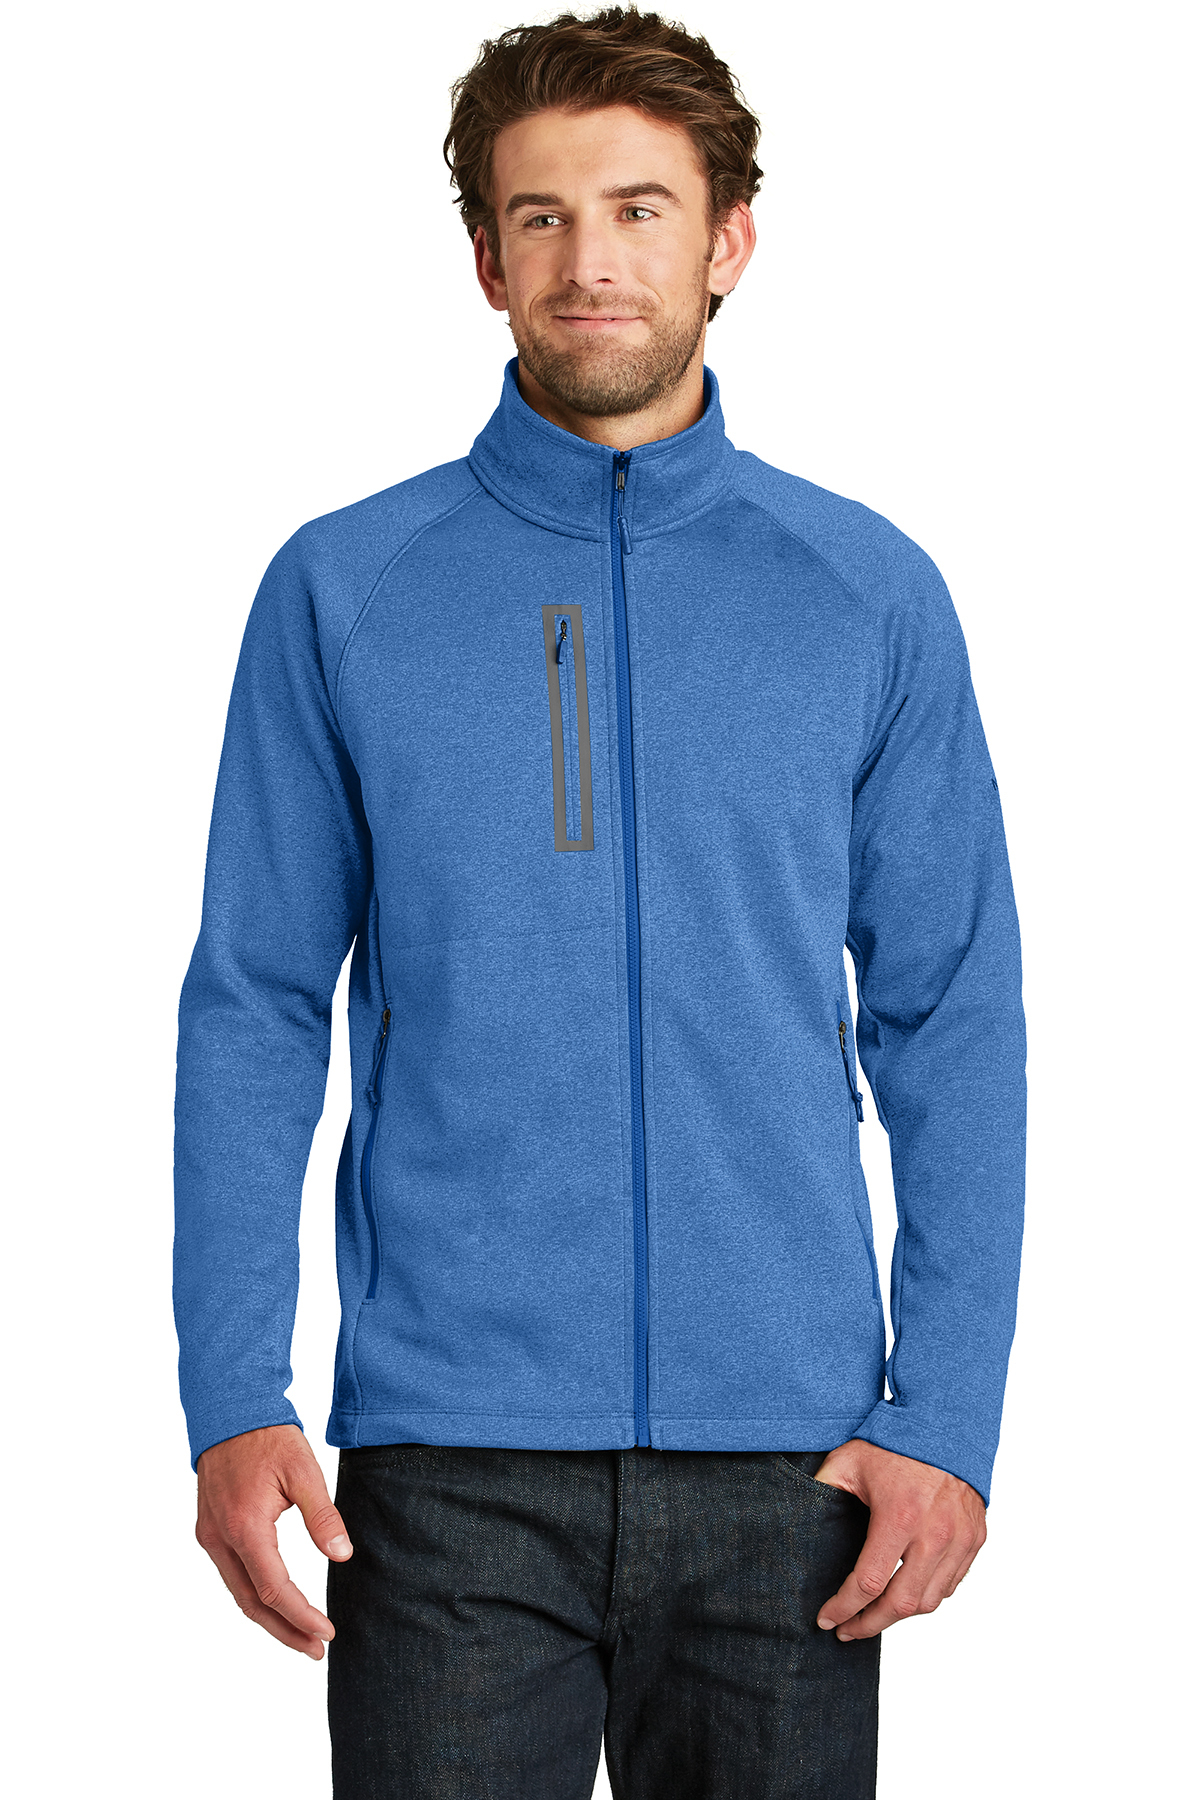 a7992ea61897 The North Face® NF0A3LH9 - Men s Canyon Flats Fleece Jacket  79.20 ...